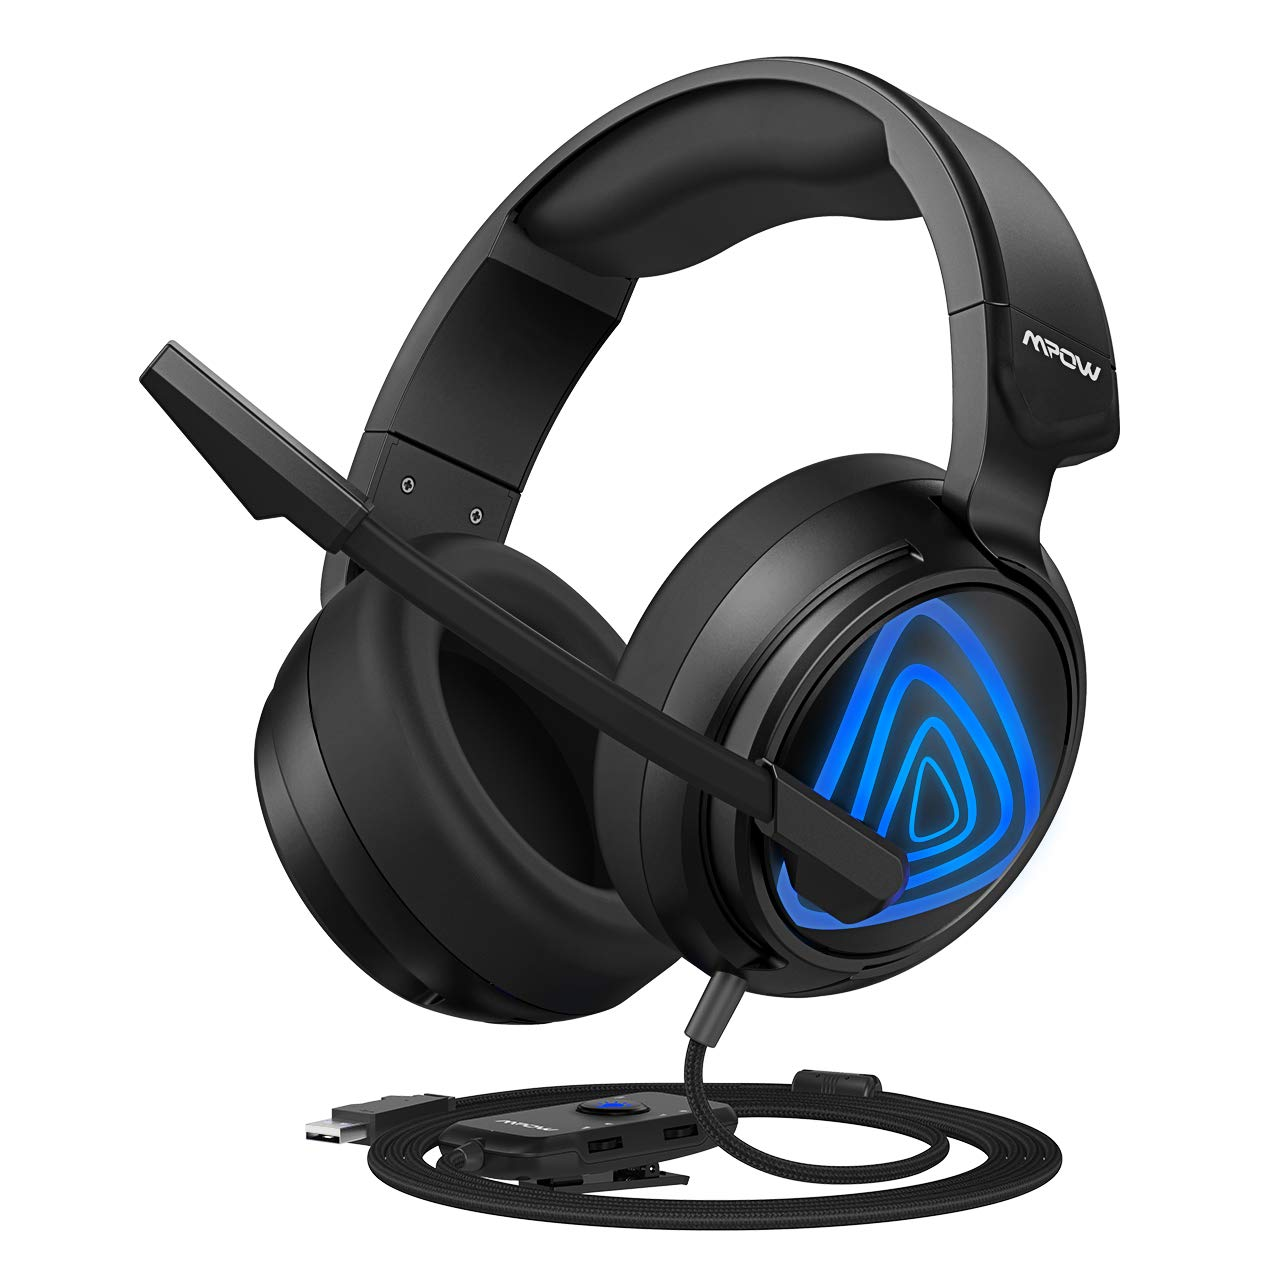 Mpow PC Gaming Headset USB Edition , with Bass Boost Surround Sound, 50mm Drivers, Noise-Cancelling Mic, in-line Control, Zero Fatigue Earpads, LED Gaming Headphone for Computer, PS4